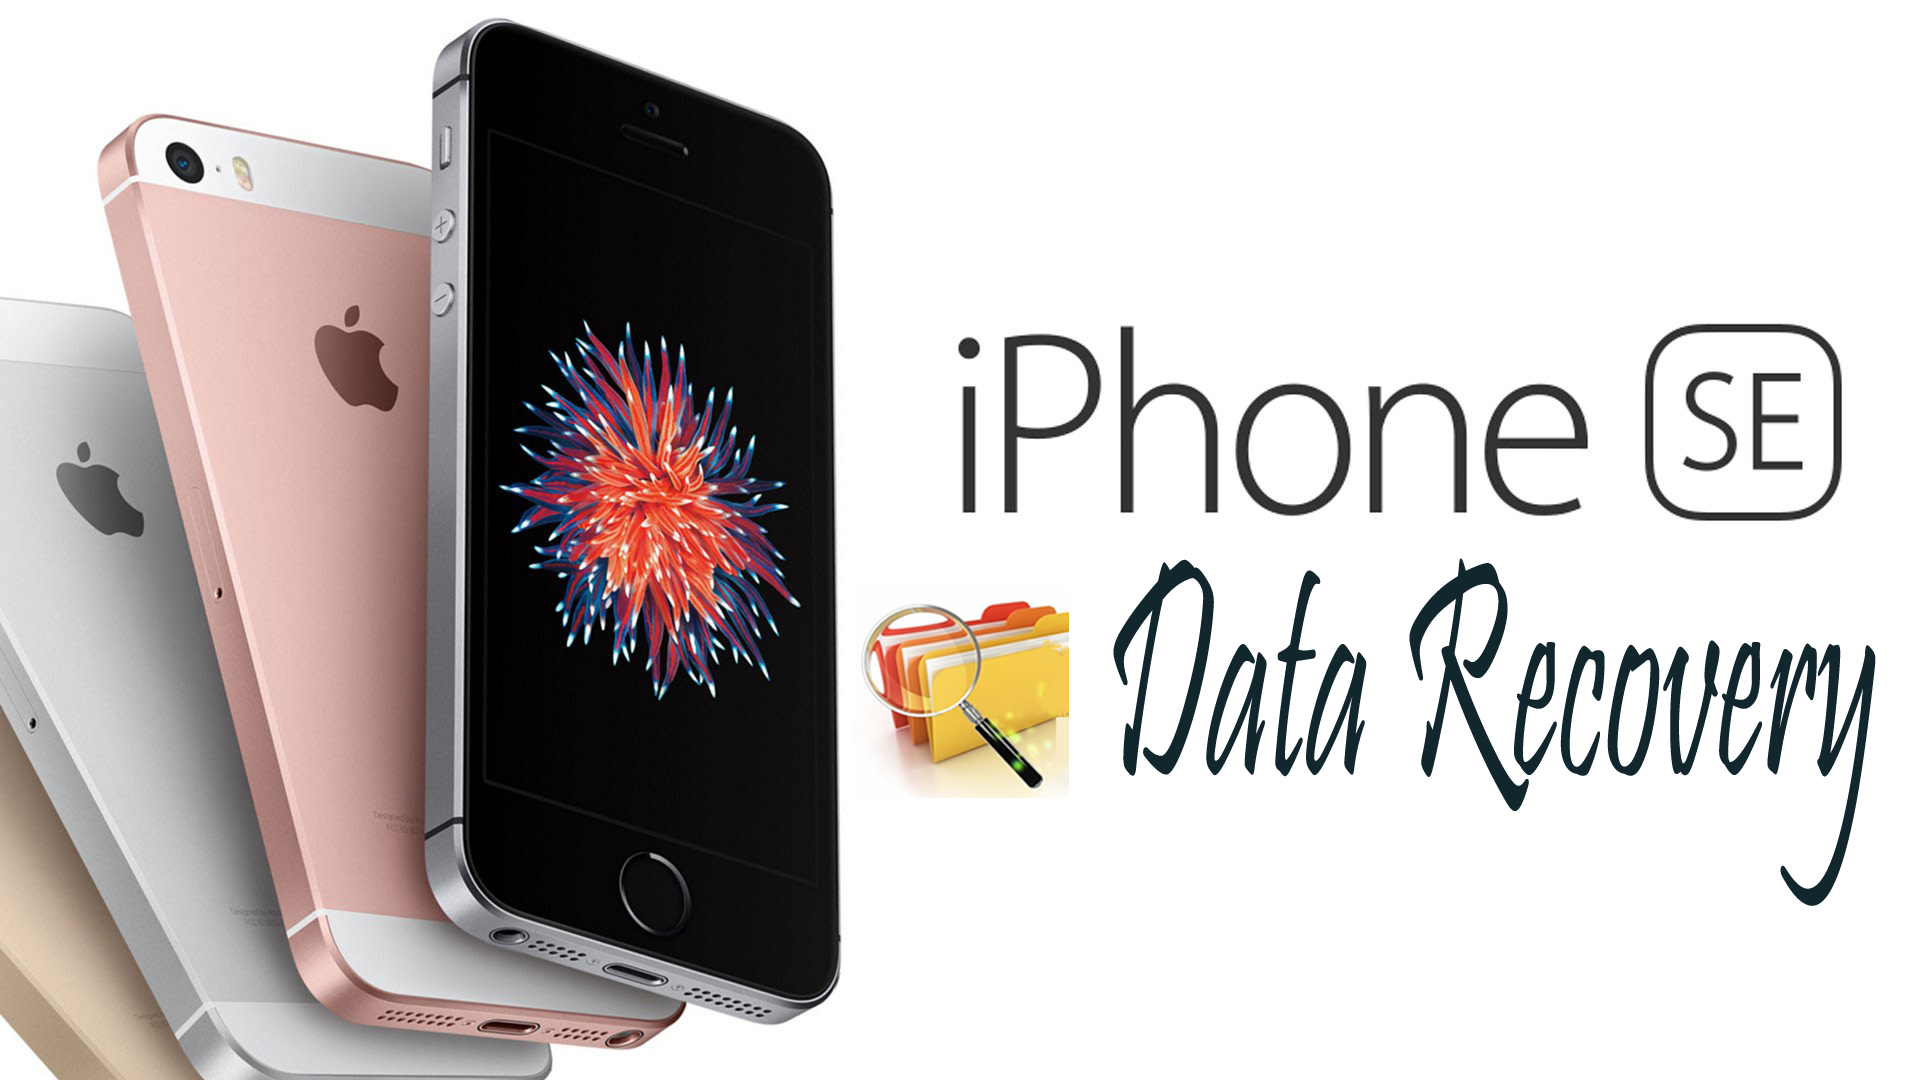 iphone data recovery iphone se data recovery recover lost deleted iphone se 11785